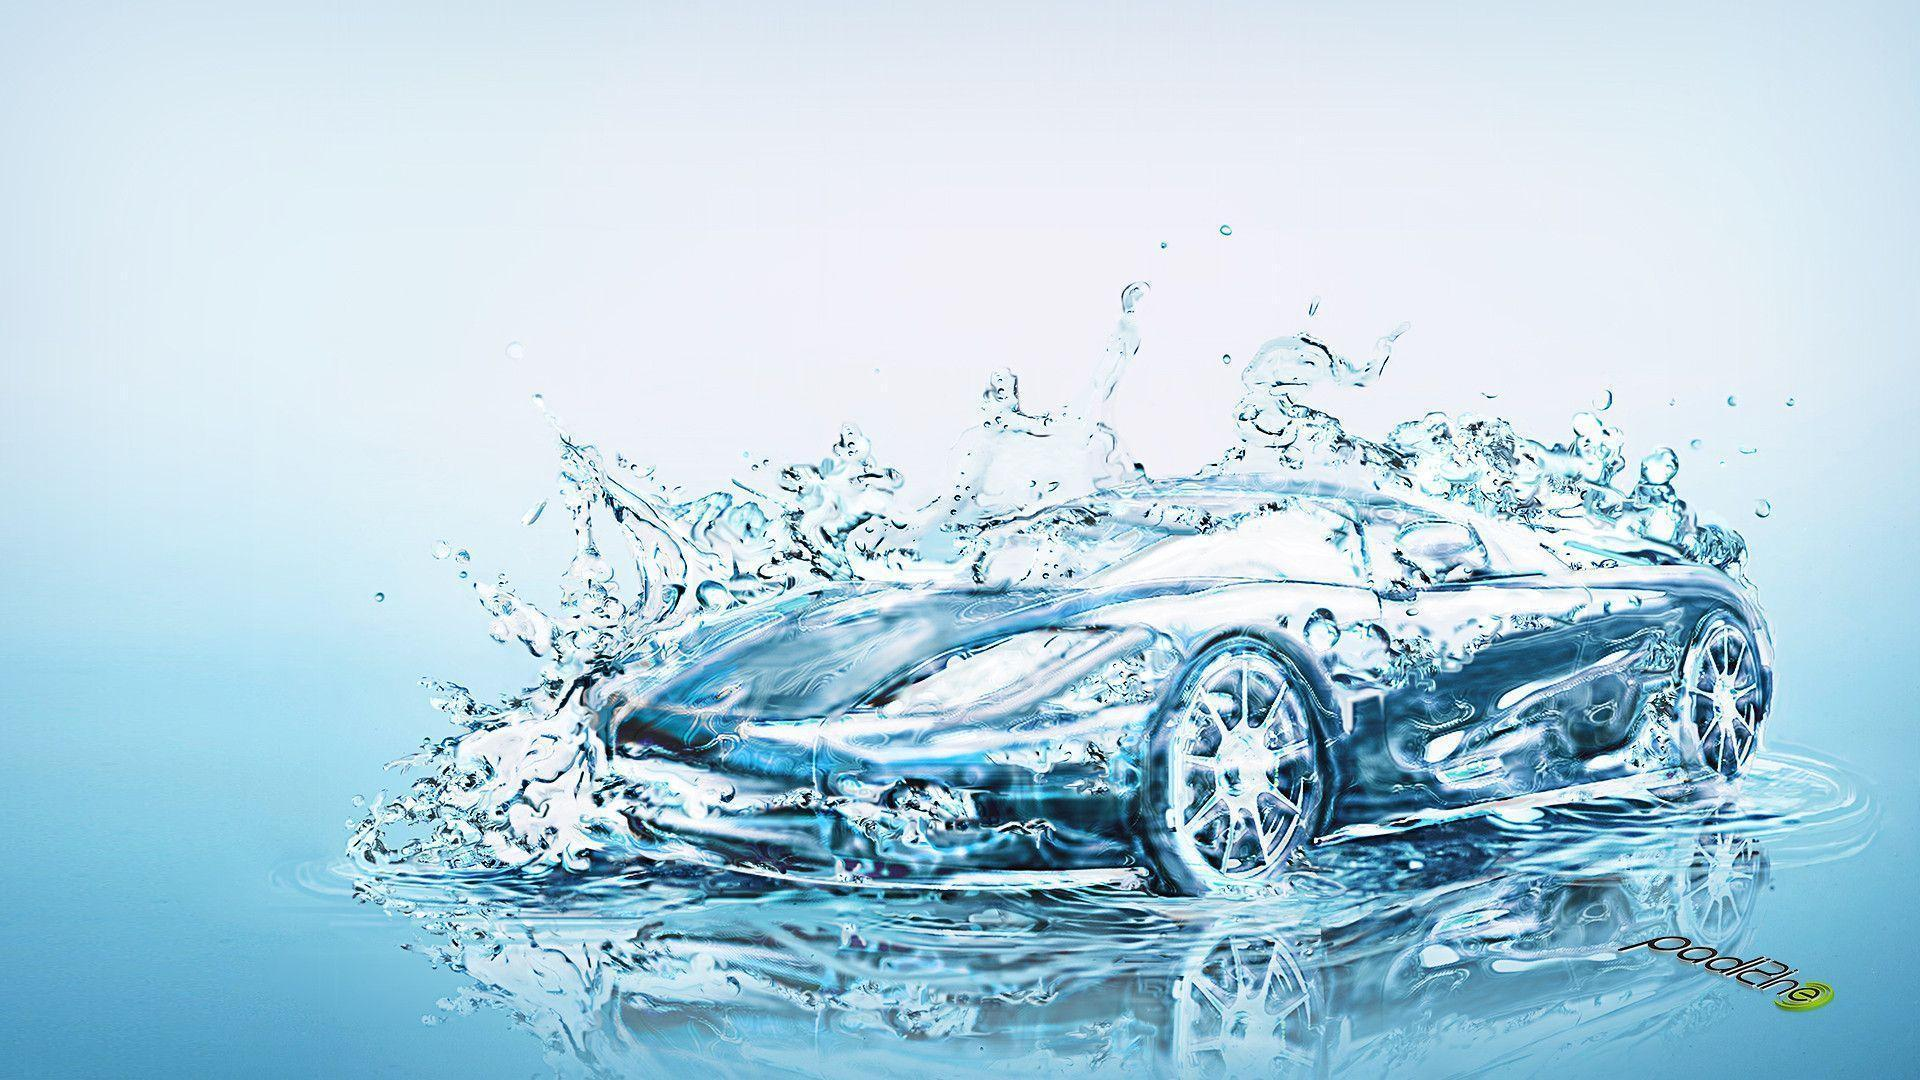 wallpaper hd car wash -#main